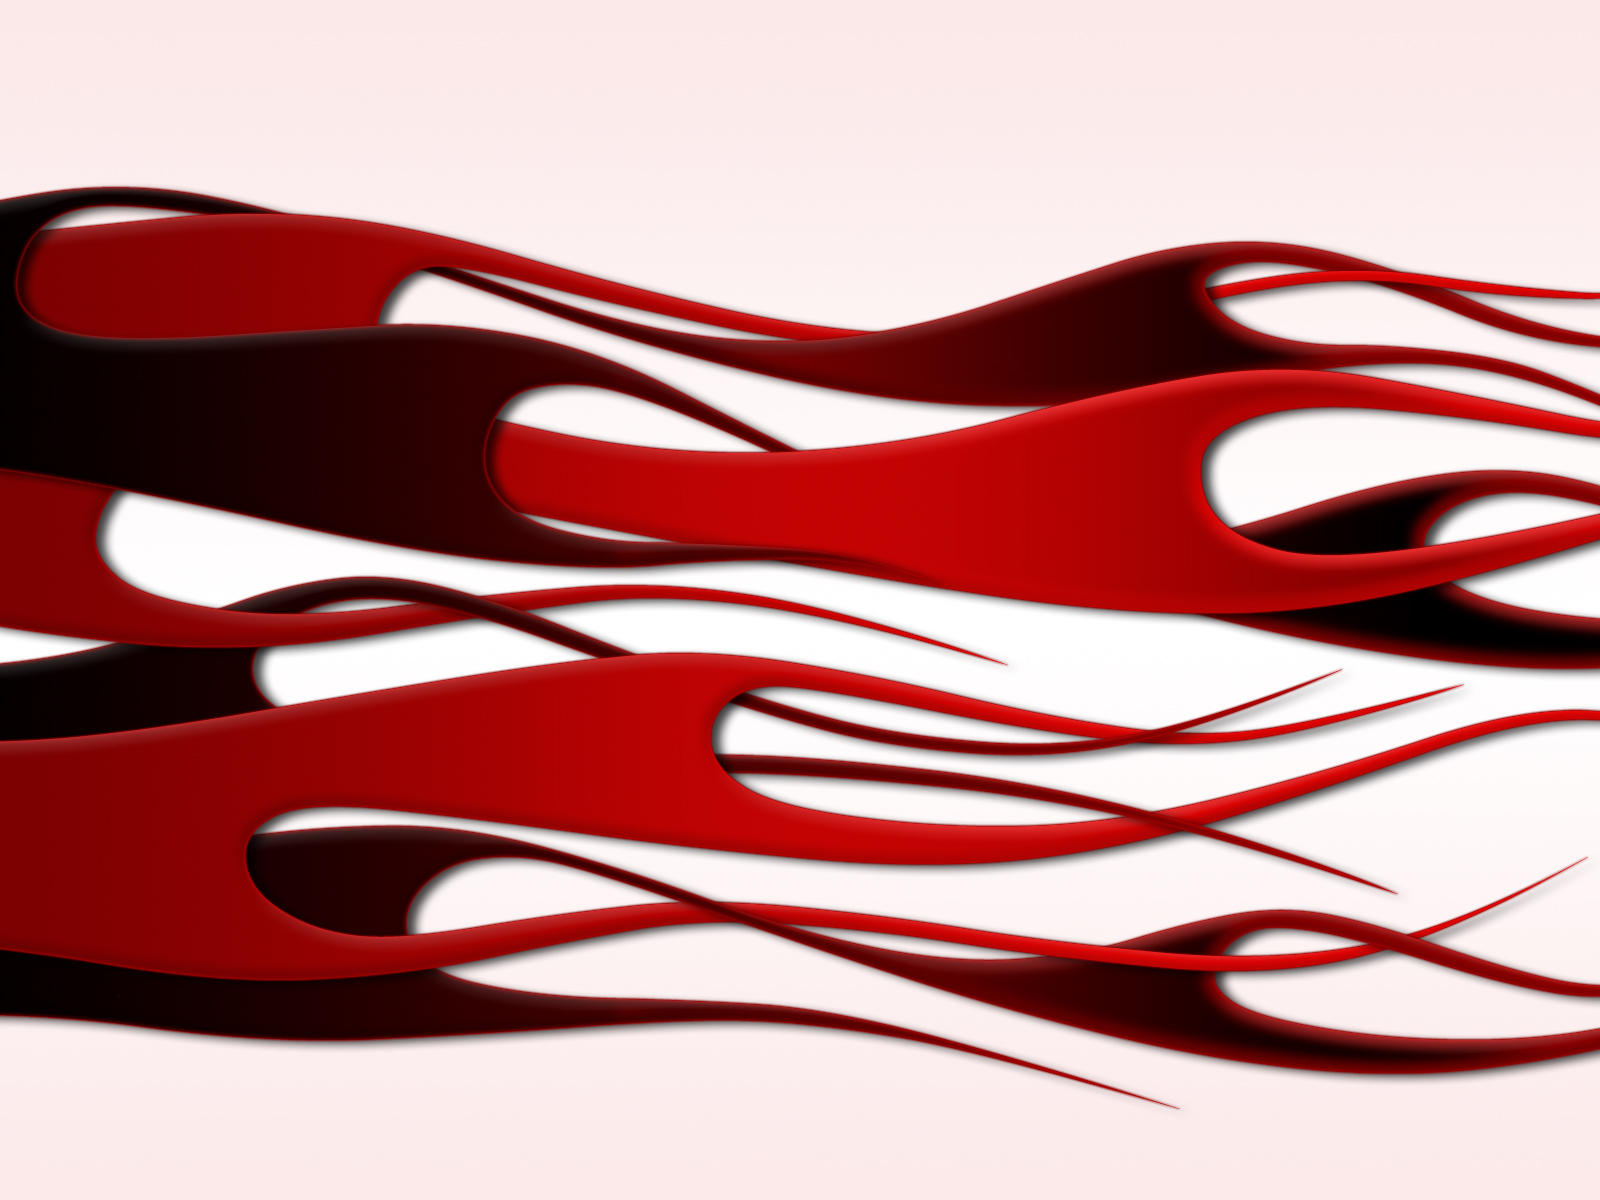 Online Wall Stickers Red And White Flames Www Pixshark Com Images Galleries